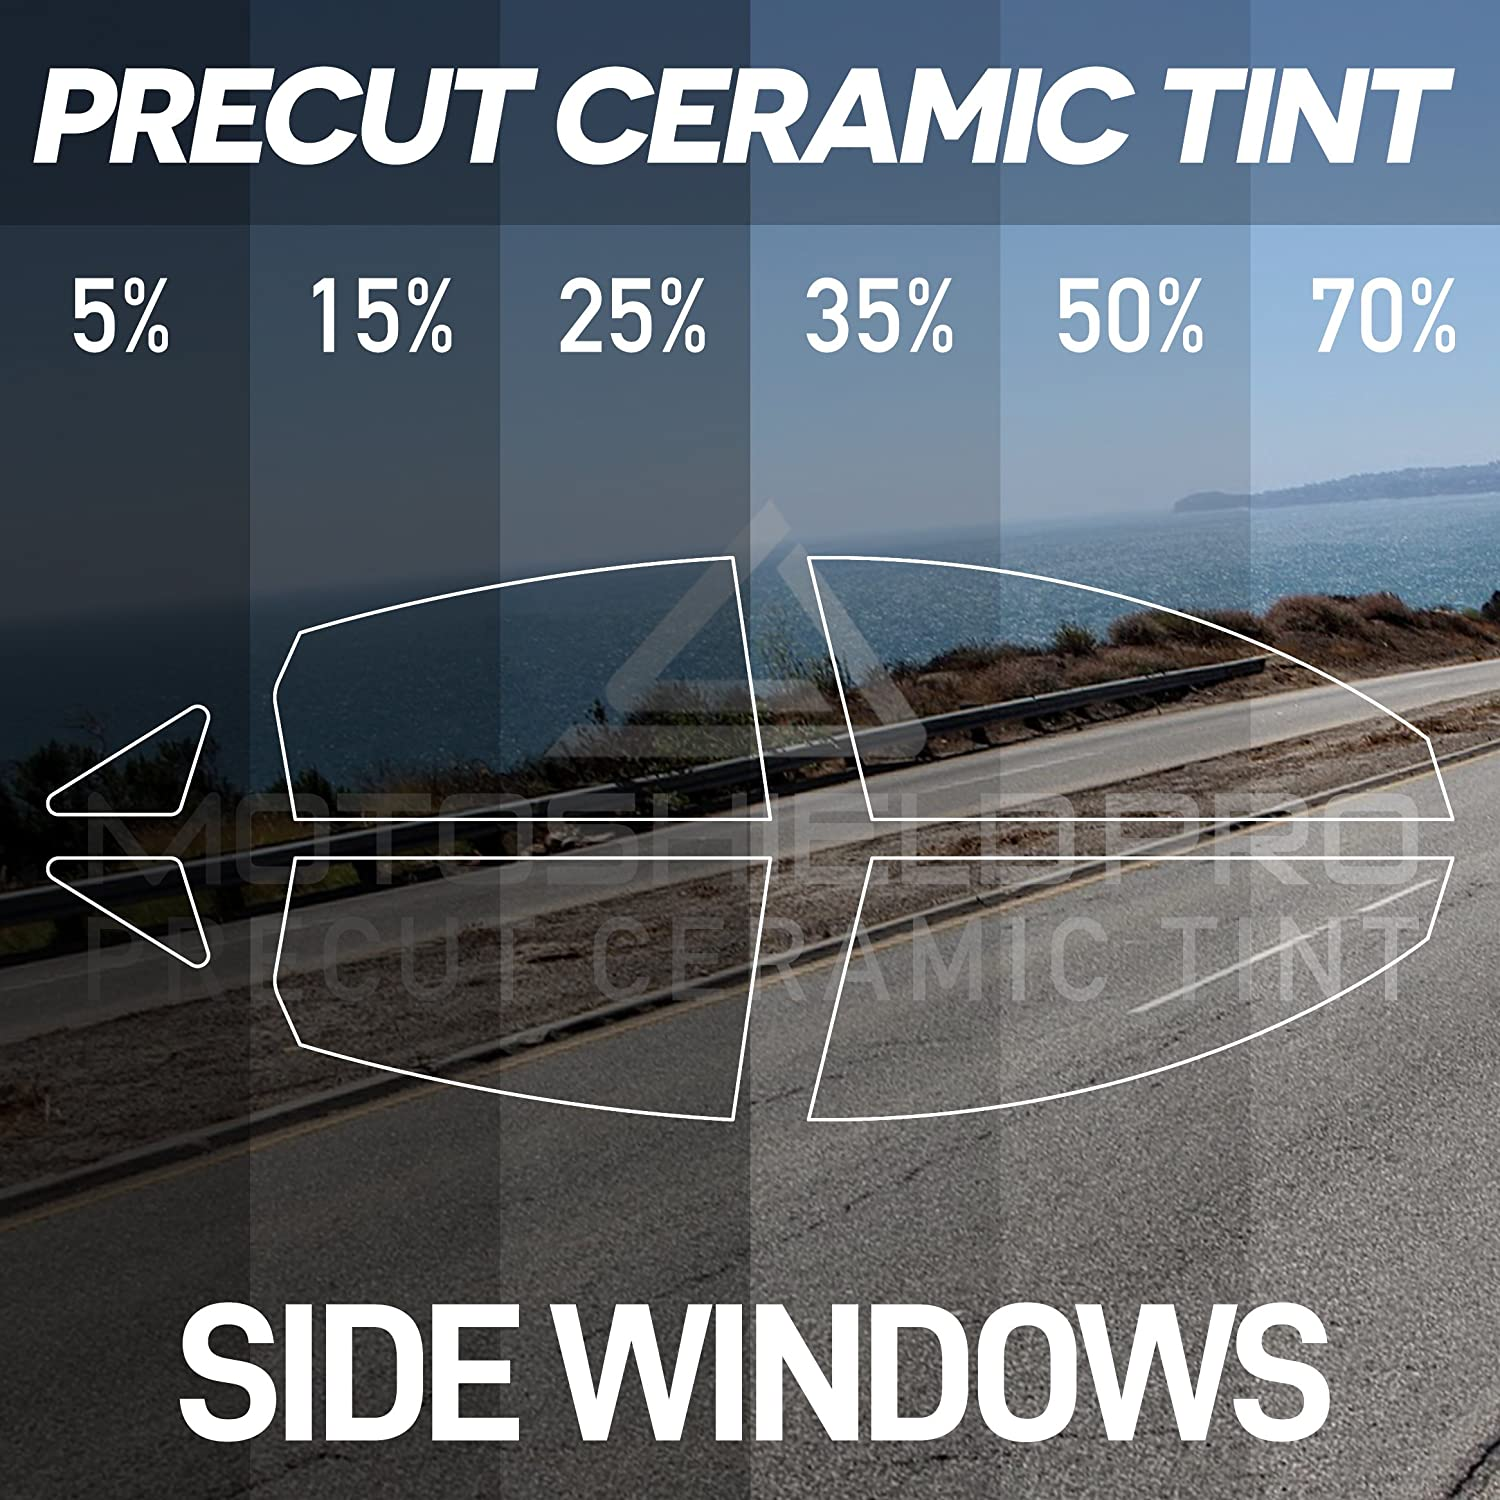 Side Windows Only Window Tint for Trucks Mini Van Any Tint Shade MotoShield Pro Precut Ceramic Tint Film SUVs Blocks Up to 99/% of UV//IRR Rays